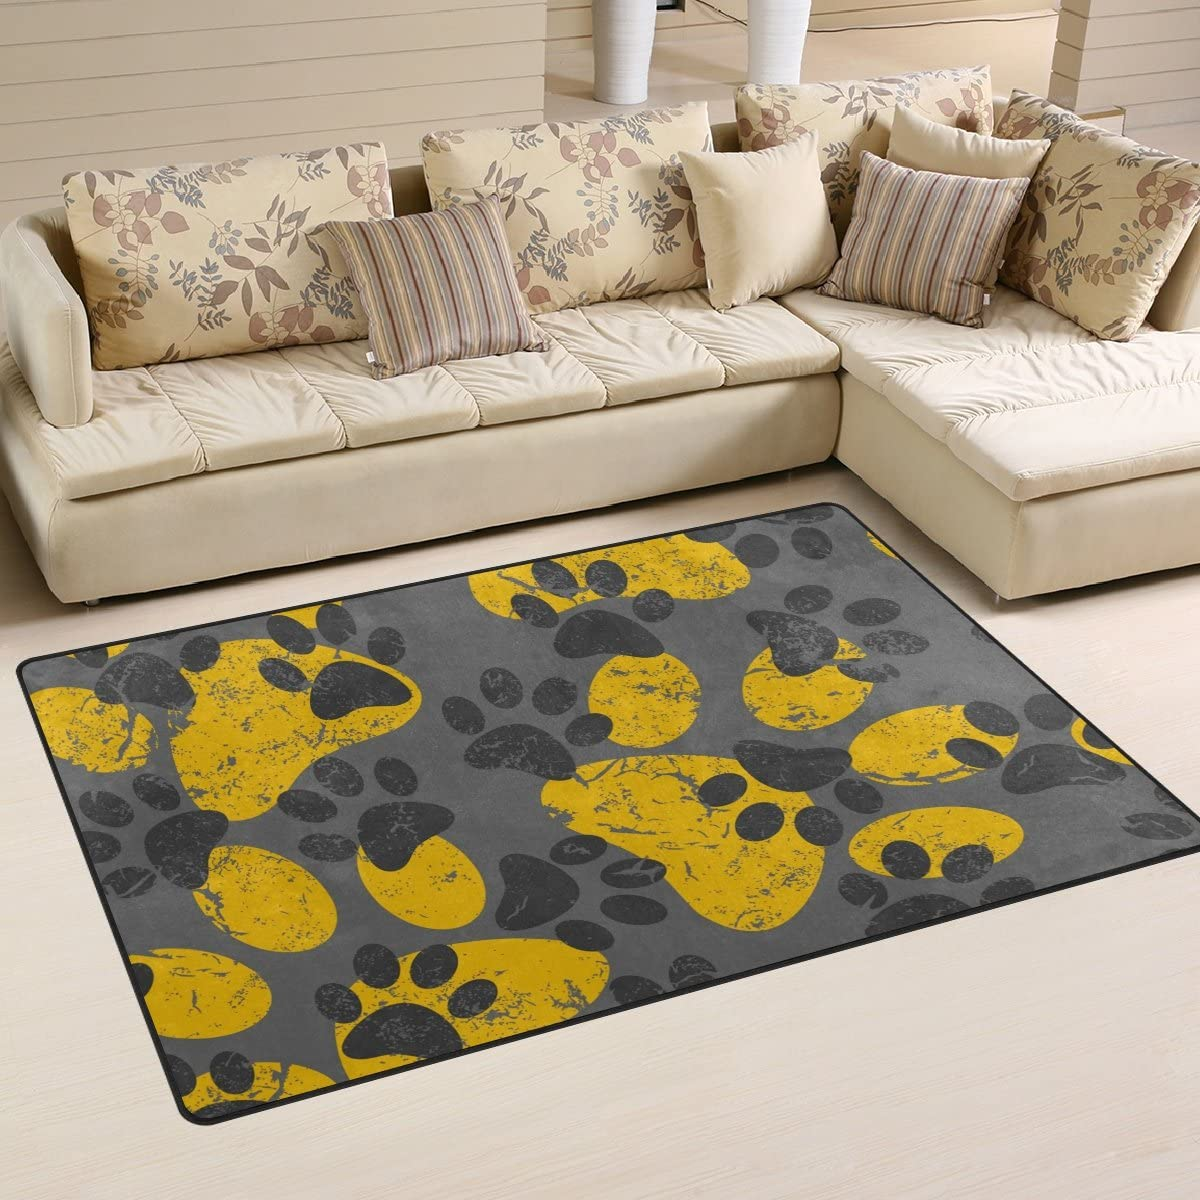 Sunlome Cat Dog Gray Yellow Paws Footprints Area Rug Rugs Non-Slip Indoor Outdoor Floor Mat Doormats for Home Decor 31 x 20 inches